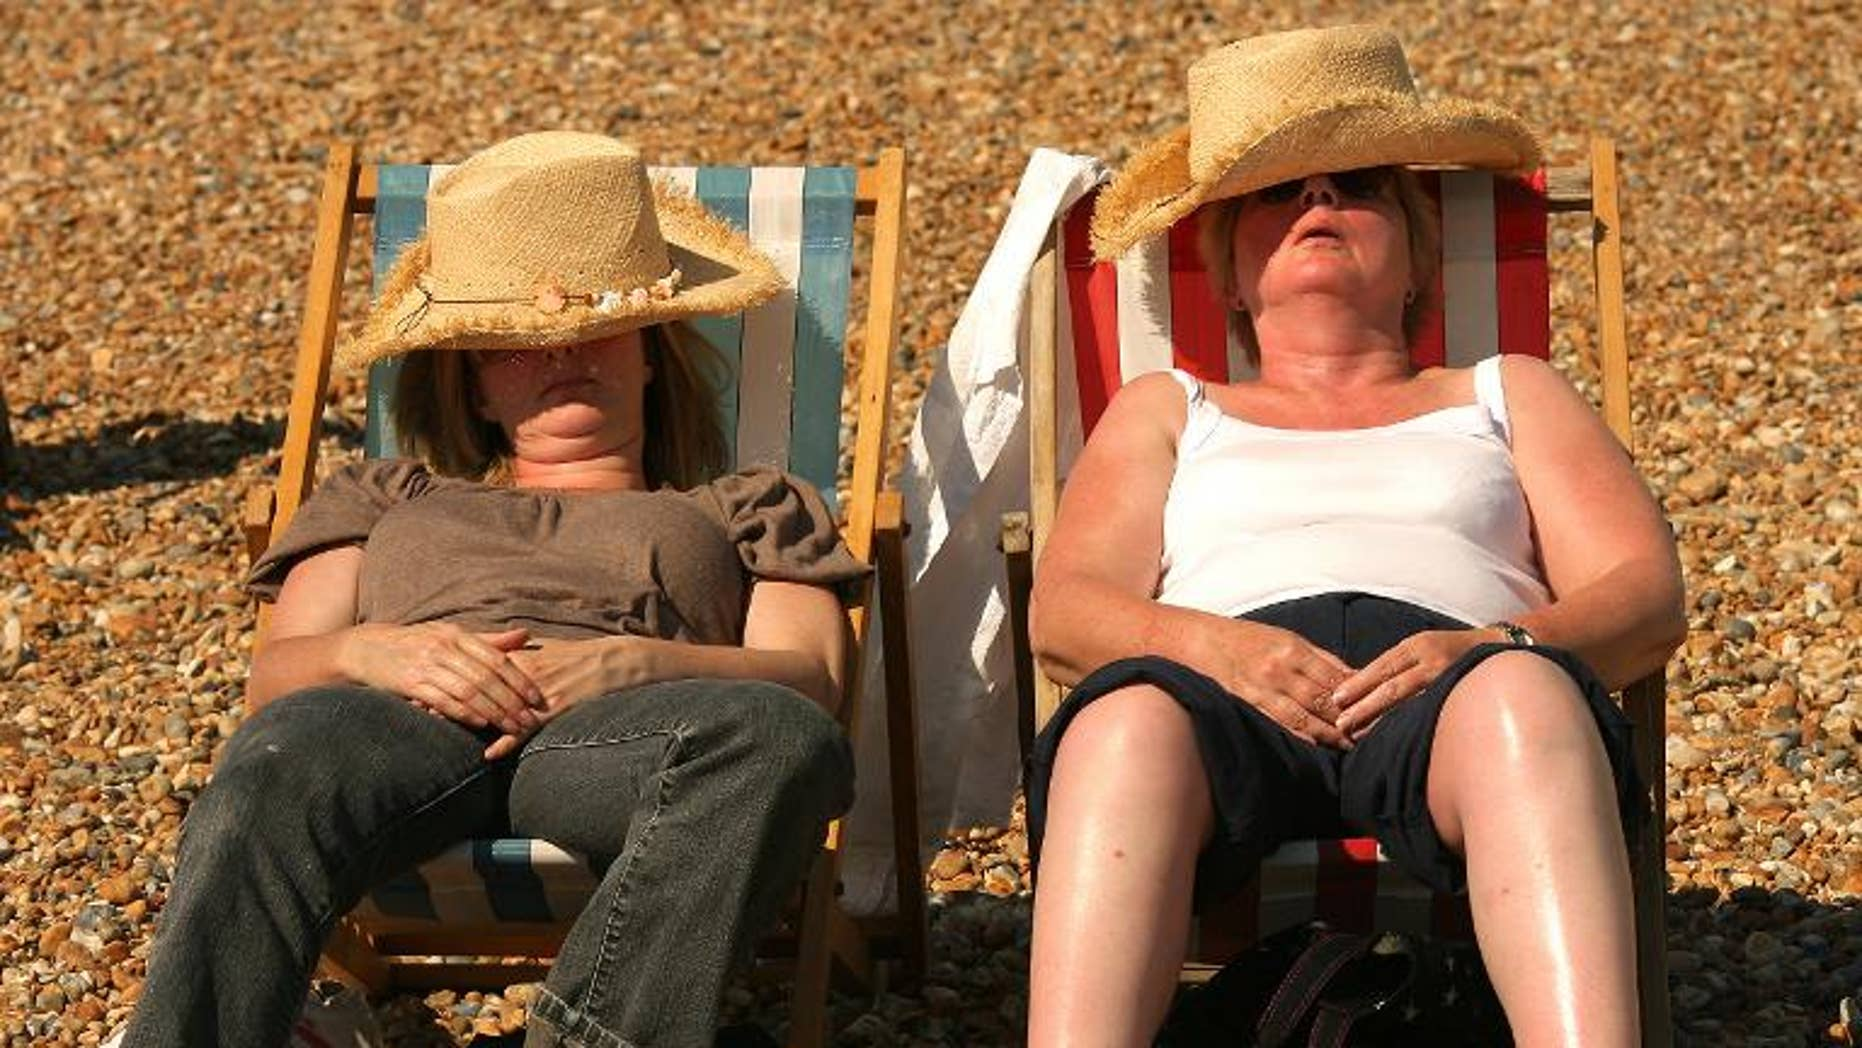 Sunbathers relax on Brighton beach in southern England on July 23, 2008.